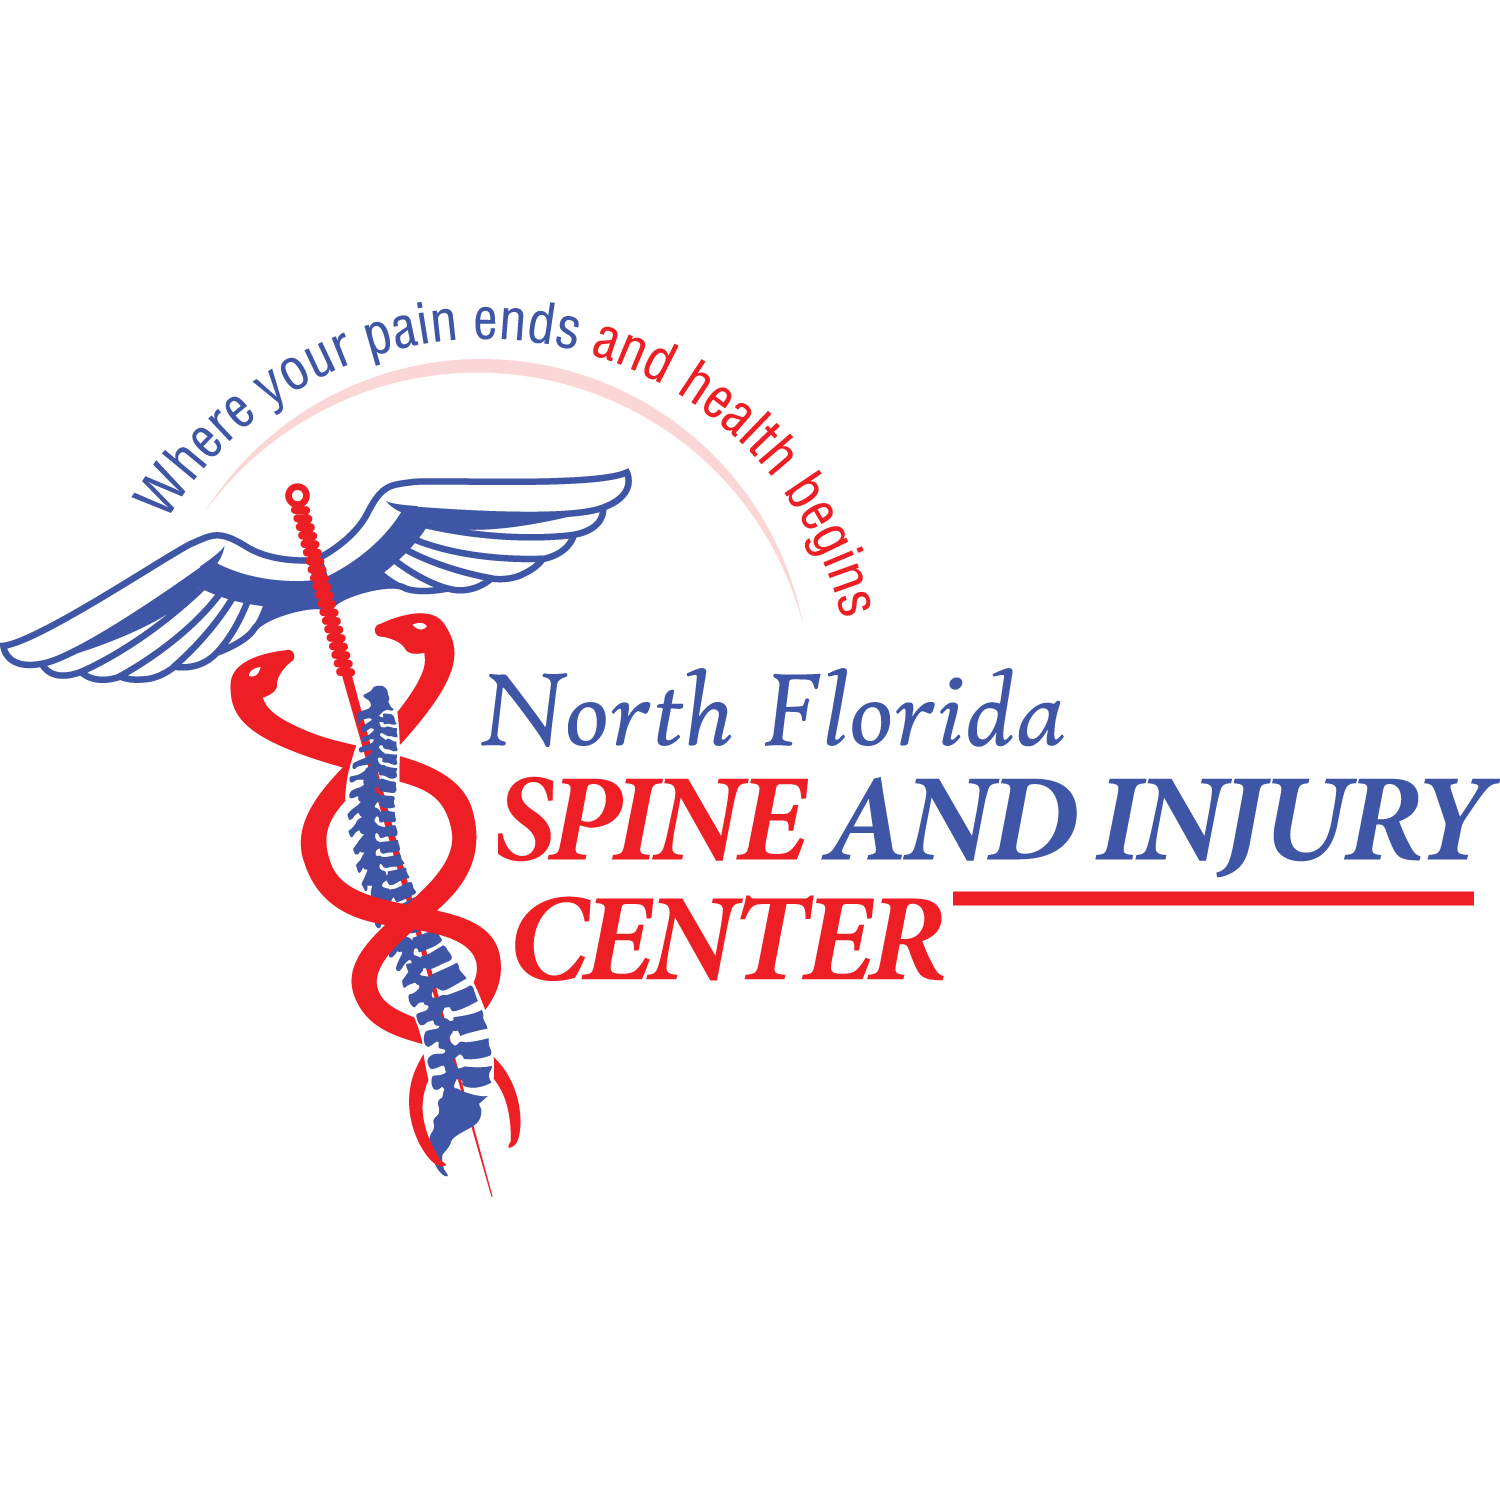 North Florida Spine and Injury Center